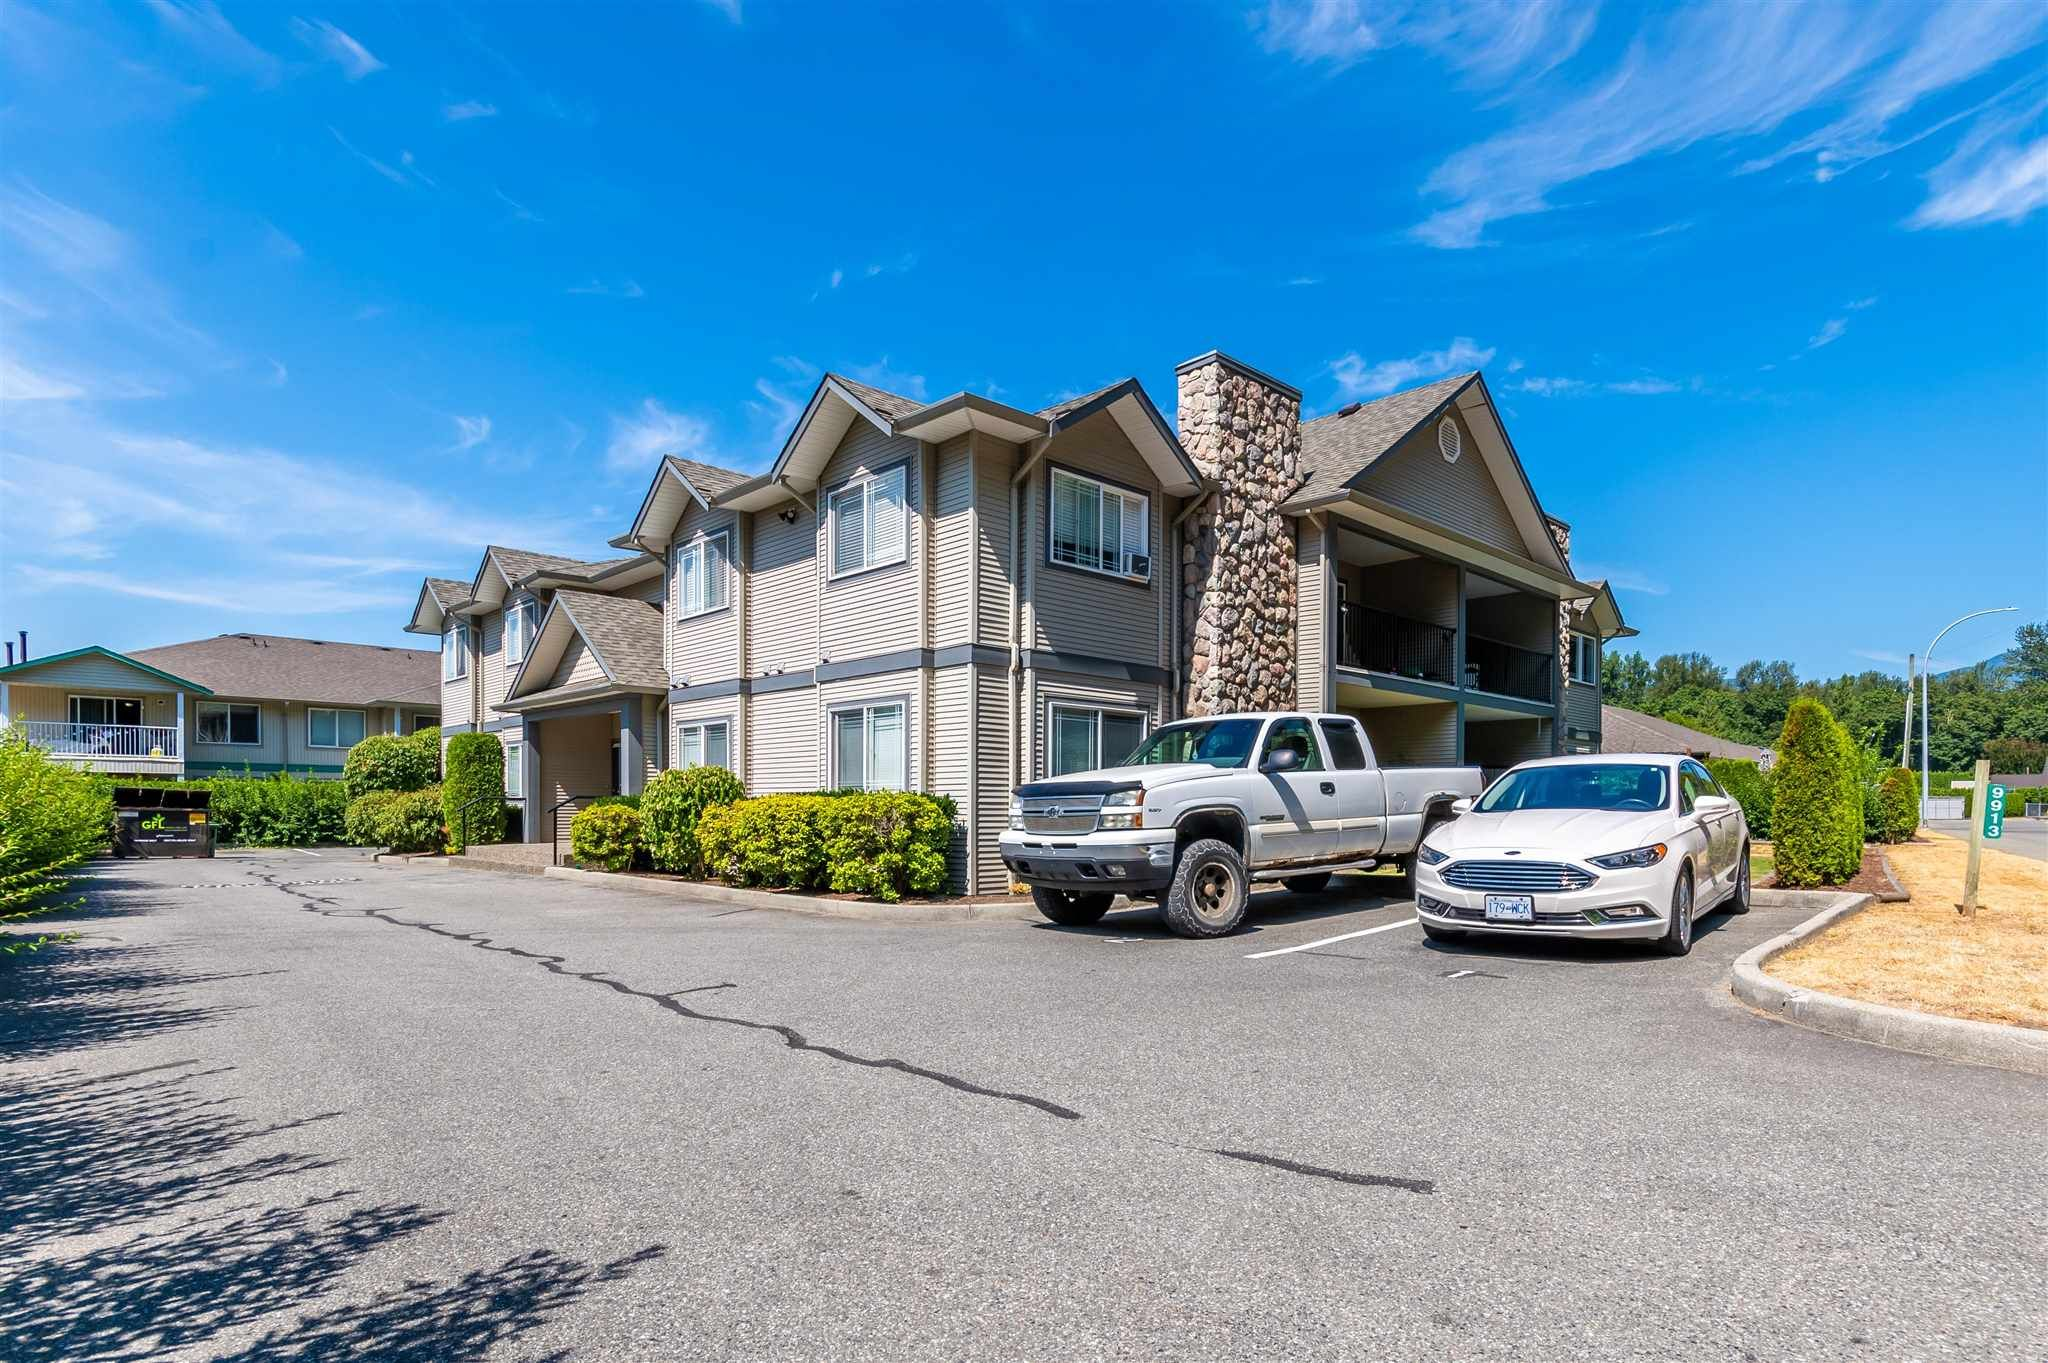 Main Photo: 1 9913 QUARRY Road in Chilliwack: Chilliwack N Yale-Well Townhouse for sale : MLS®# R2605742